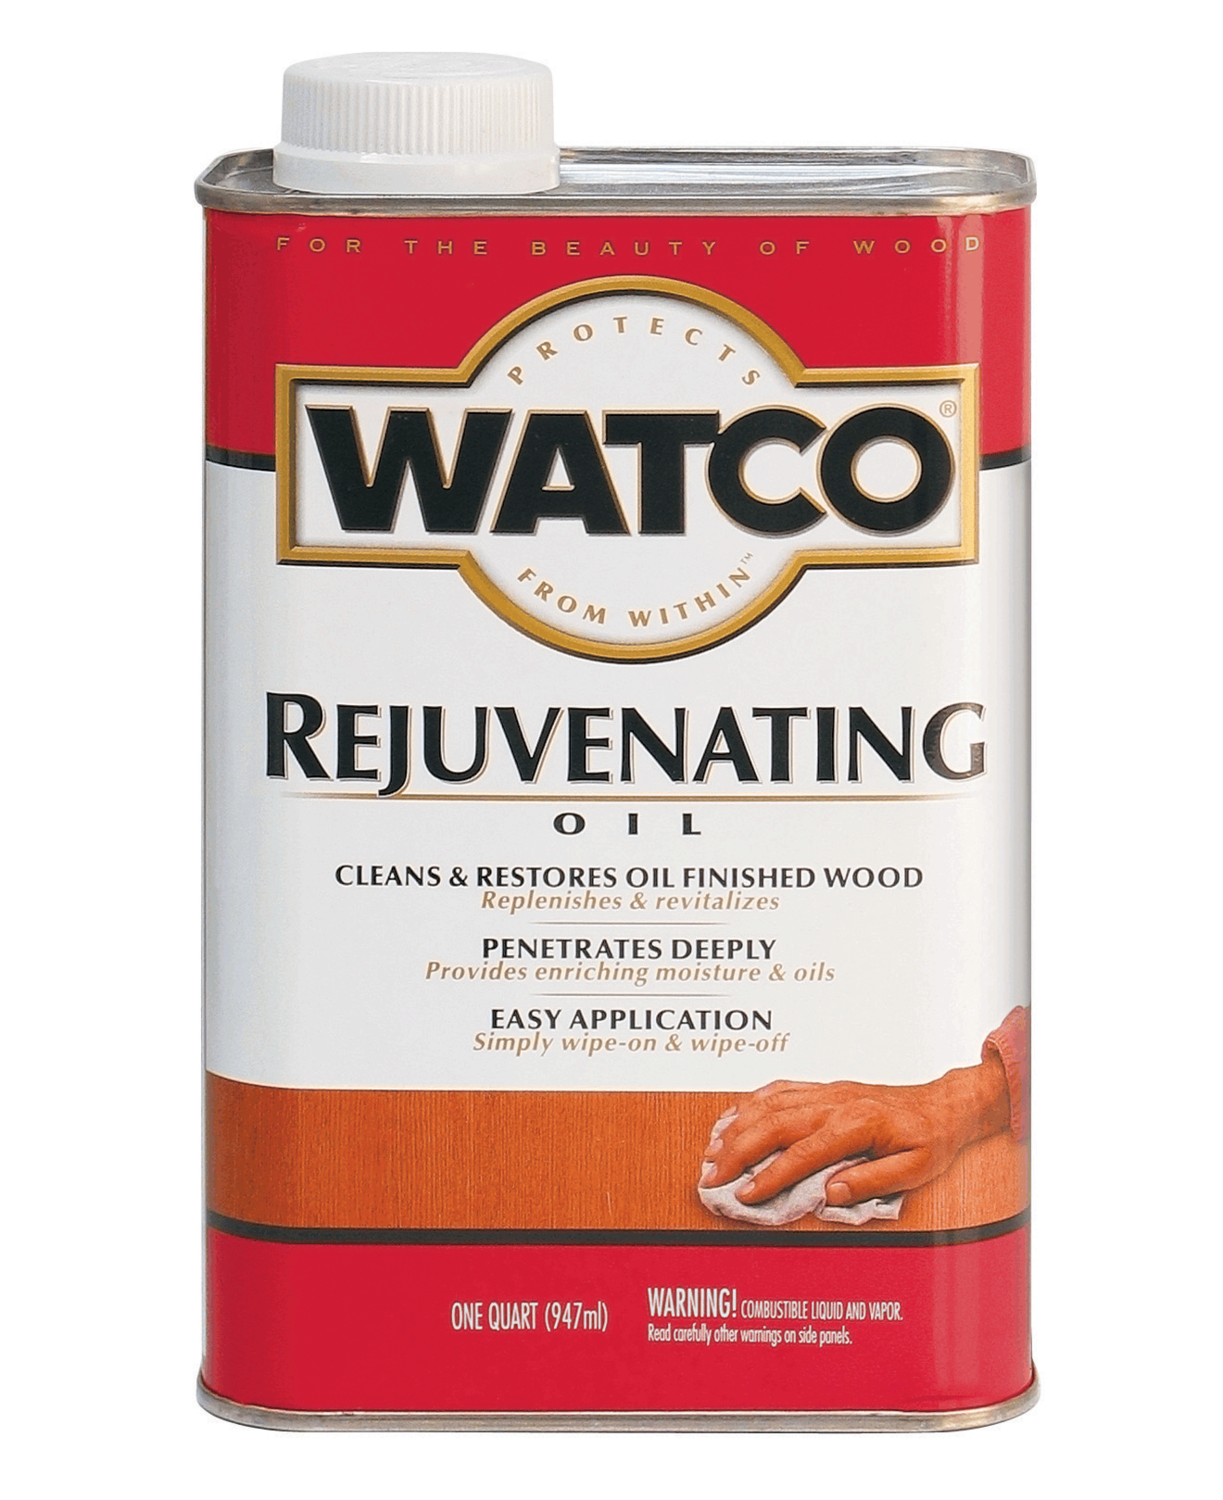 Watco Rejuvenating Oil